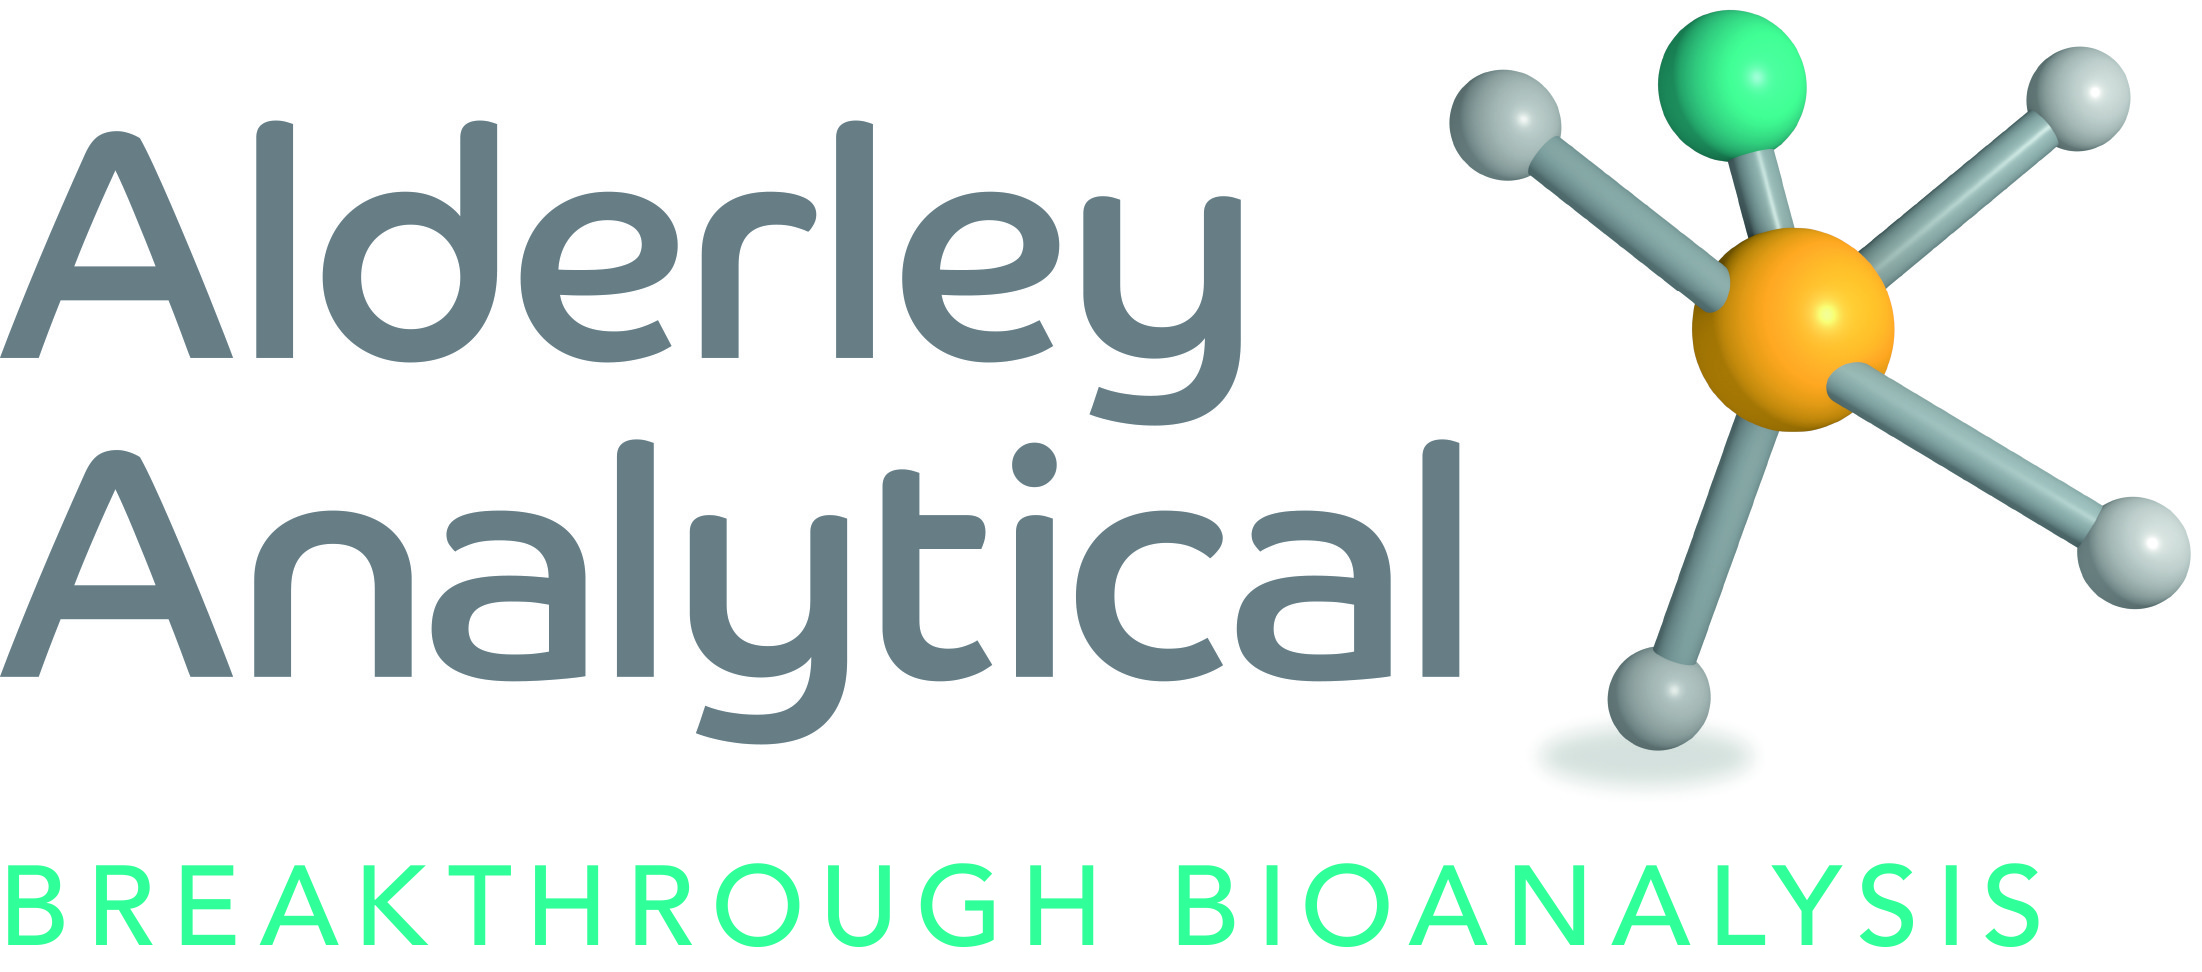 Alderley Analytical Master logo_strapline_CMYK_High res (with url) (1).jpg